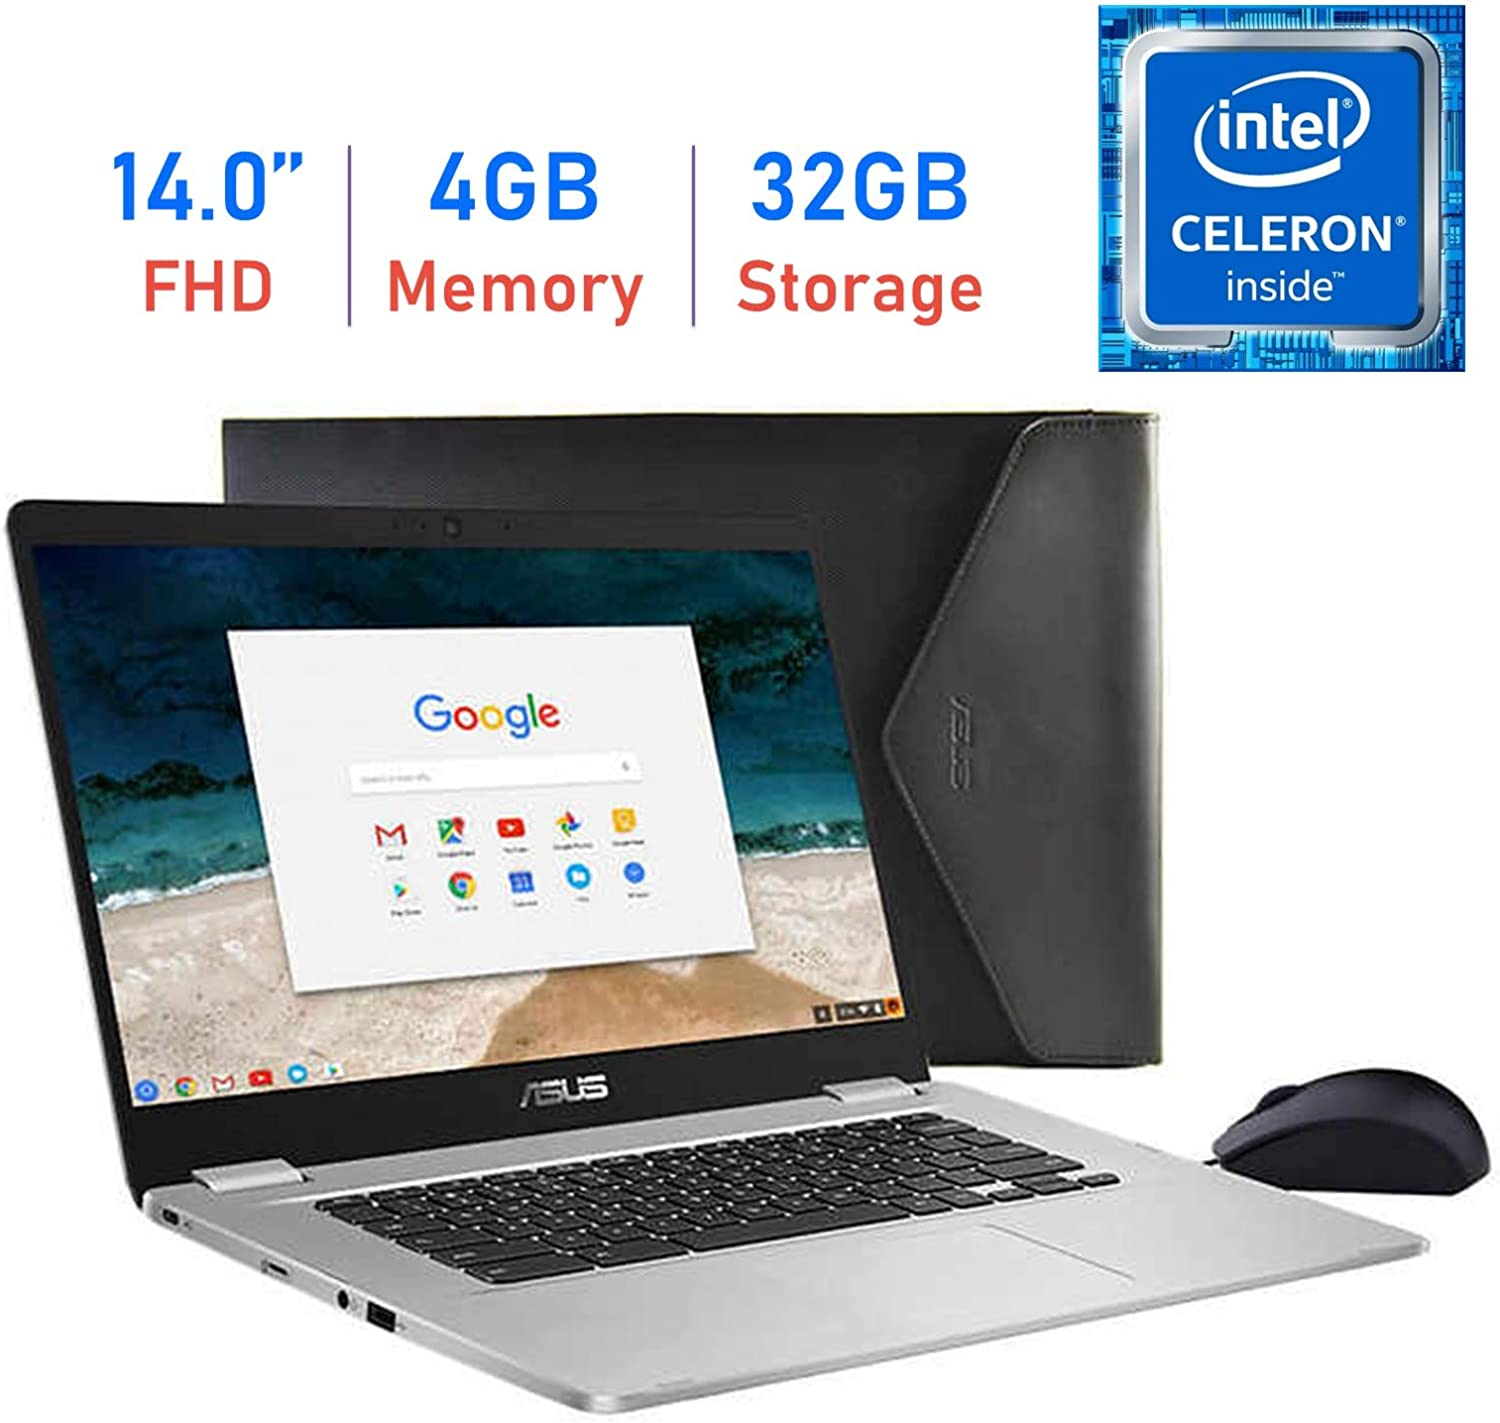 """ASUS C423NA Chromebook 14"""" FHD (1920x1080) Laptop PC, Intel Dual Core Celeron N3350 up to 2.4GHz, 4GB LPDDR4 RAM, 32GB eMMC, Durable 180° Hinge, Bluetooth, Chrome OS, Mouse and Sleeve Included"""